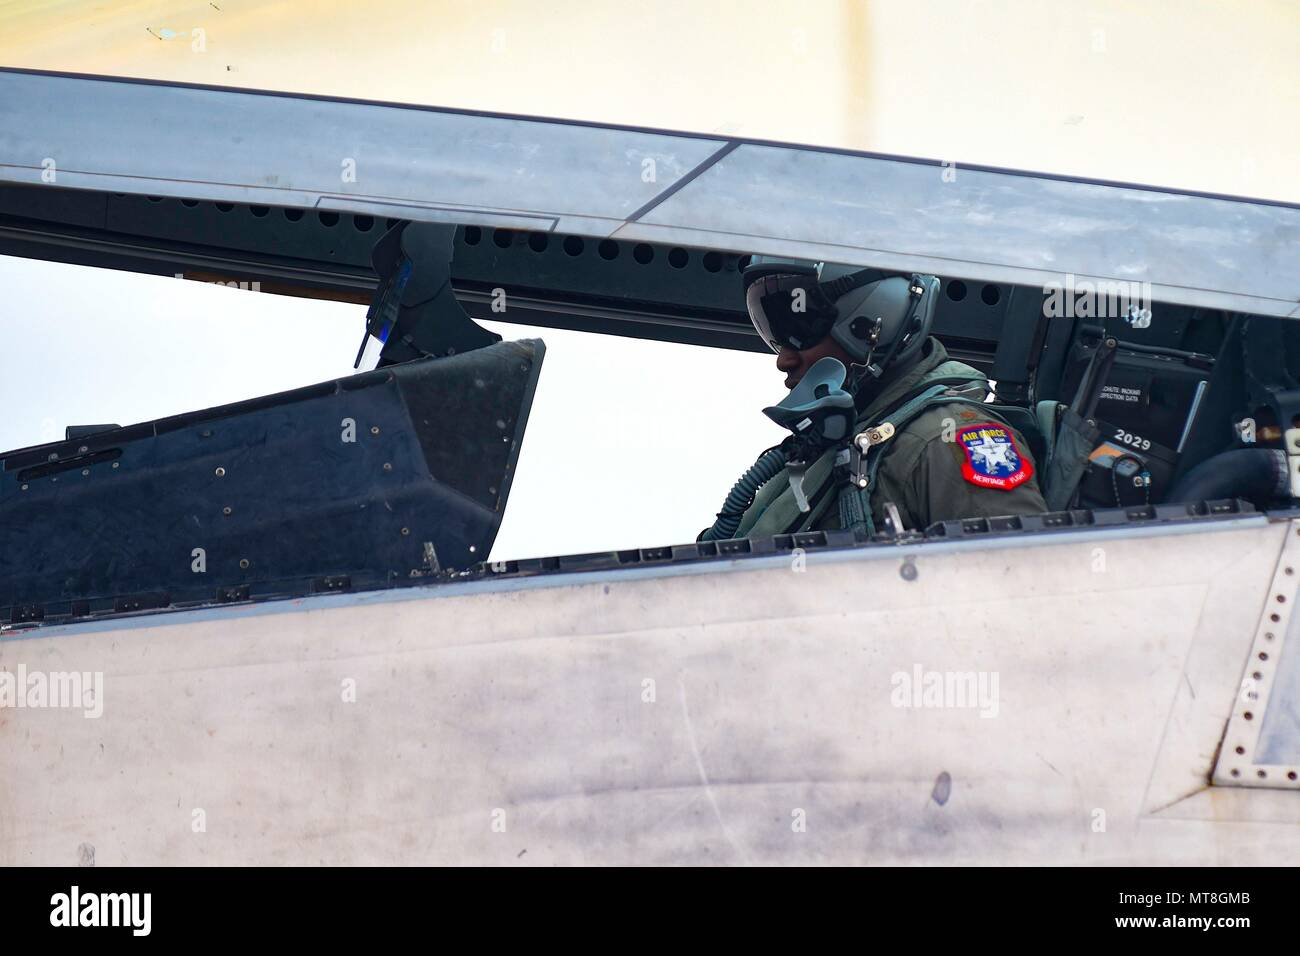 e9c21d49539 Tampa Bay Airfest 2018 Stock Photos   Tampa Bay Airfest 2018 Stock ...